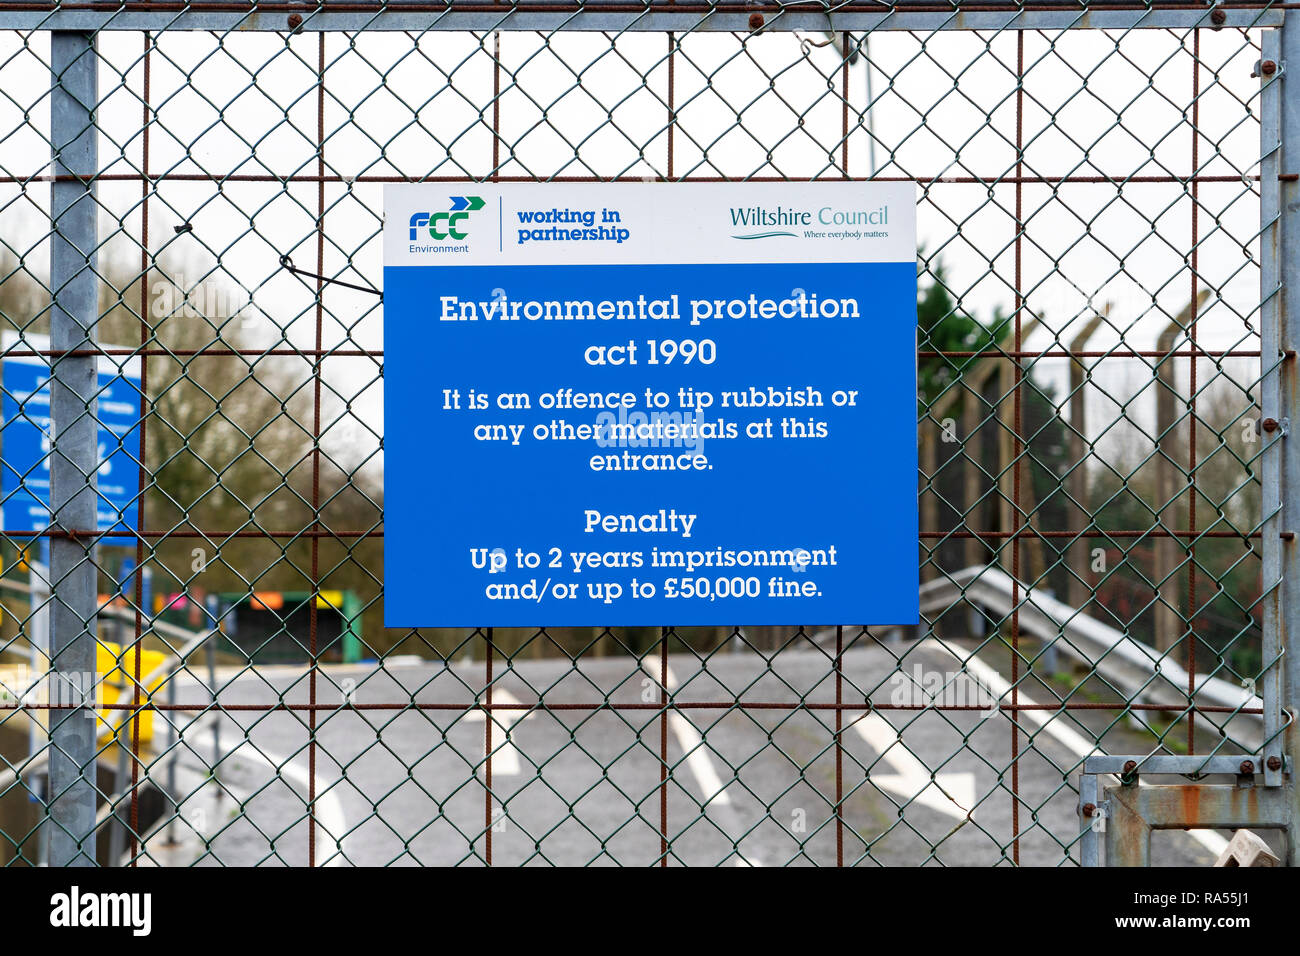 Environmental protection act 1990 sign on the gate at the entrance to a recycling centre - Stock Image